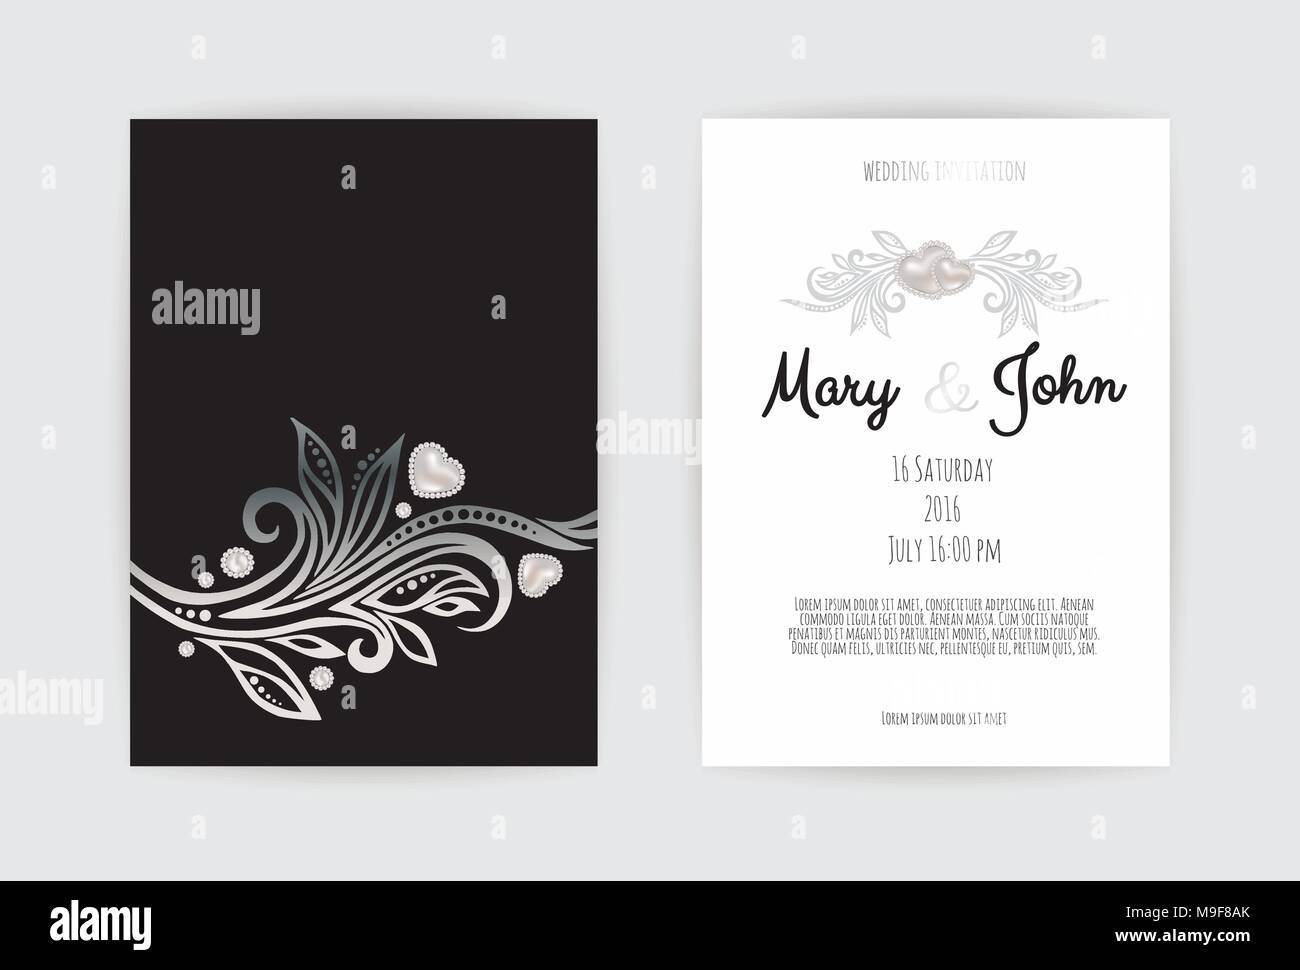 Vintage wedding invitation templates cover design with silver vintage wedding invitation templates cover design with silver leaves ornaments vector traditional decorative backgrounds stopboris Image collections